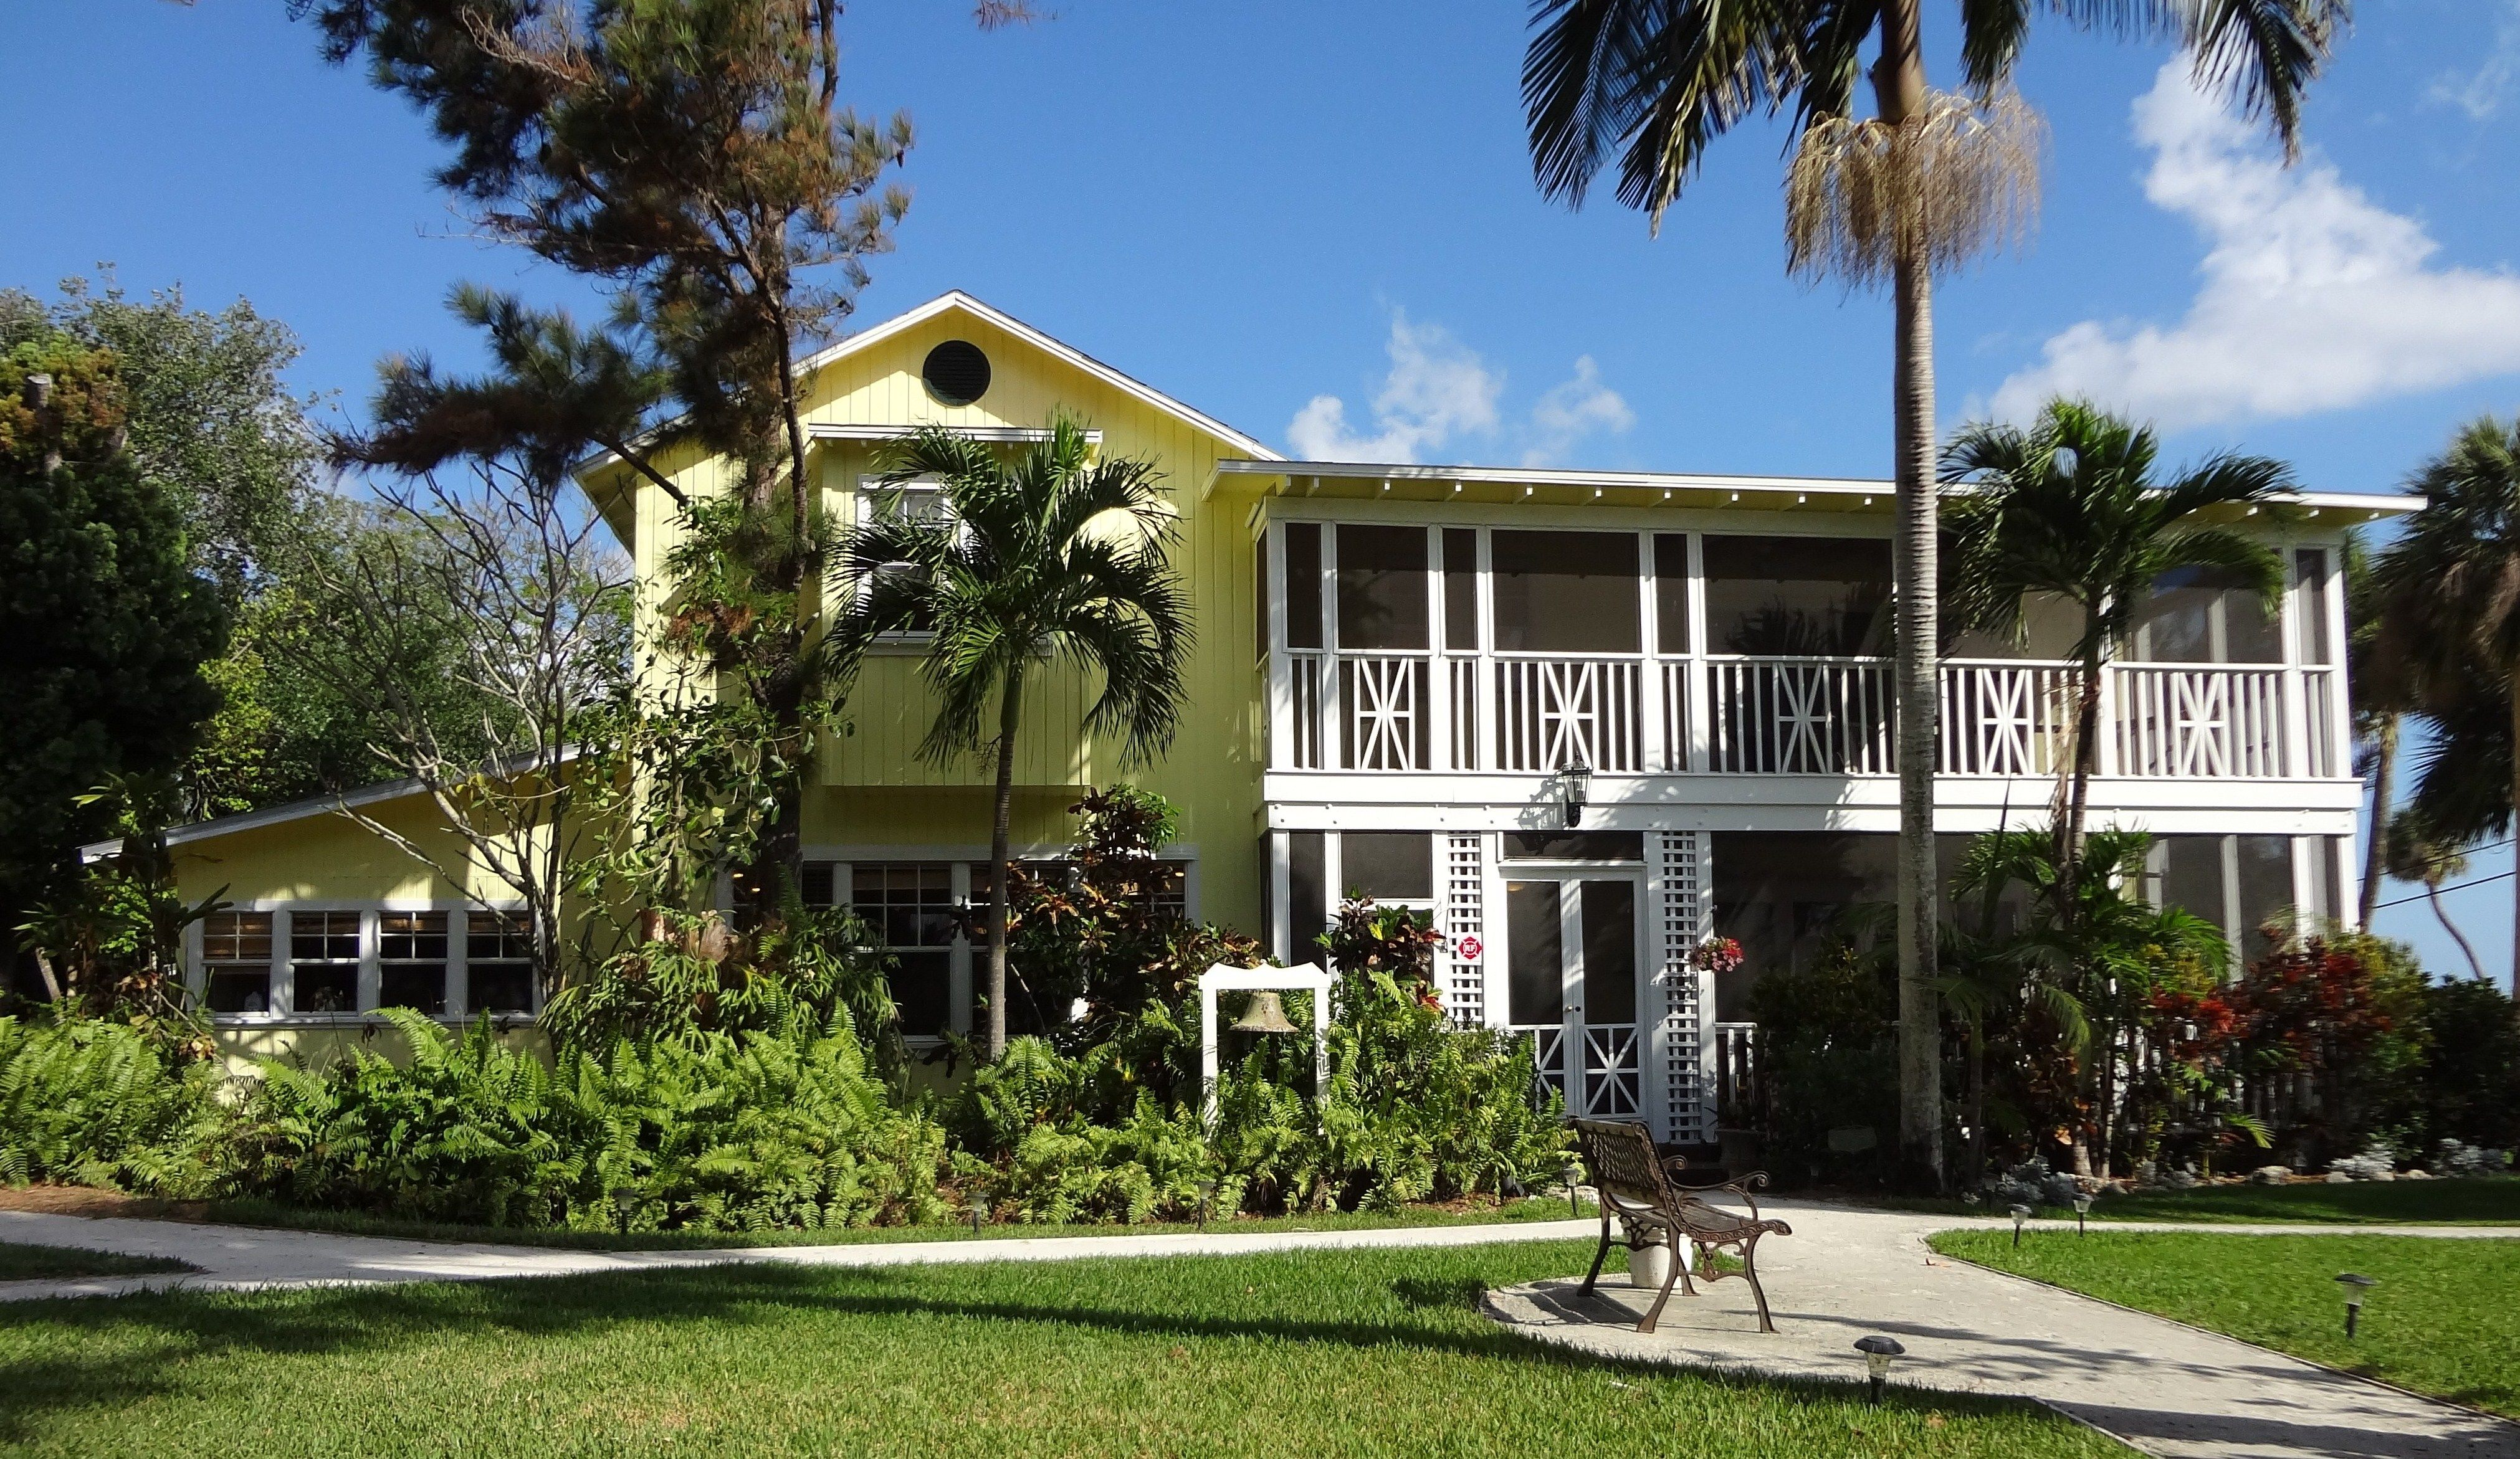 12 palms recovery center is a private dual diagnosis residential